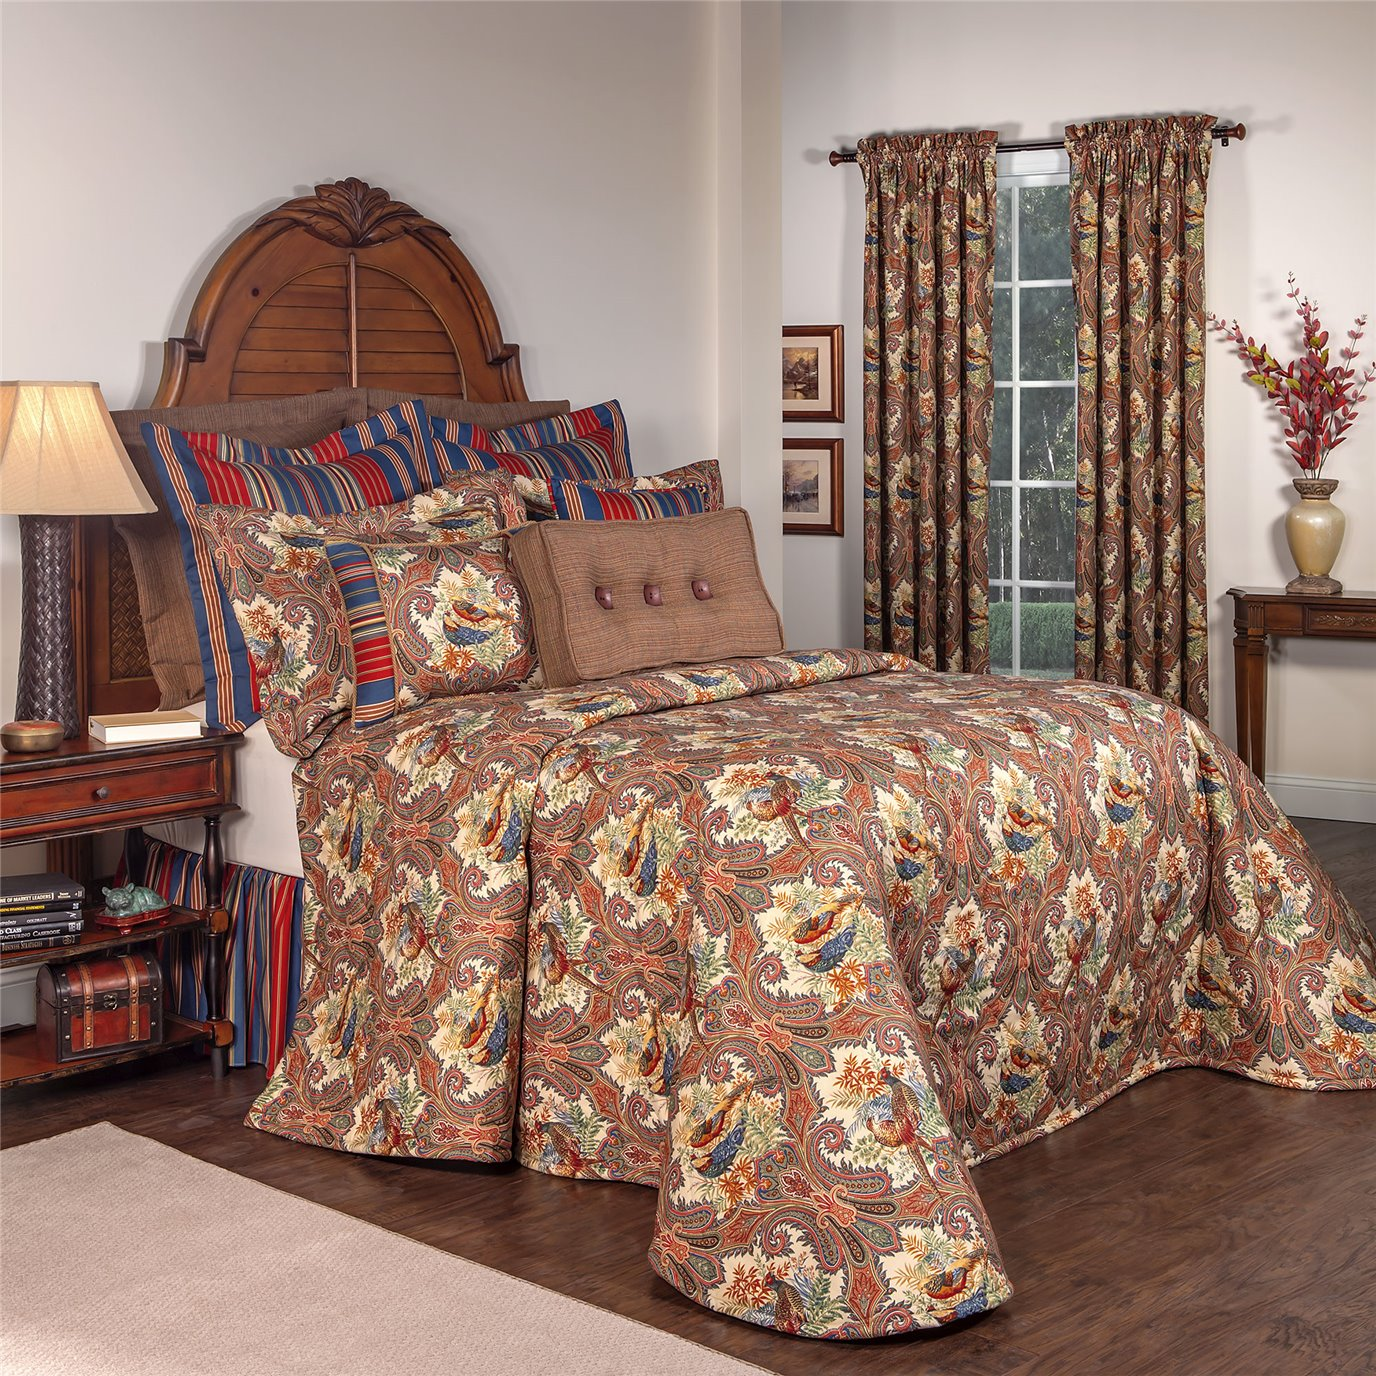 Royal Pheasant California King Bedspread